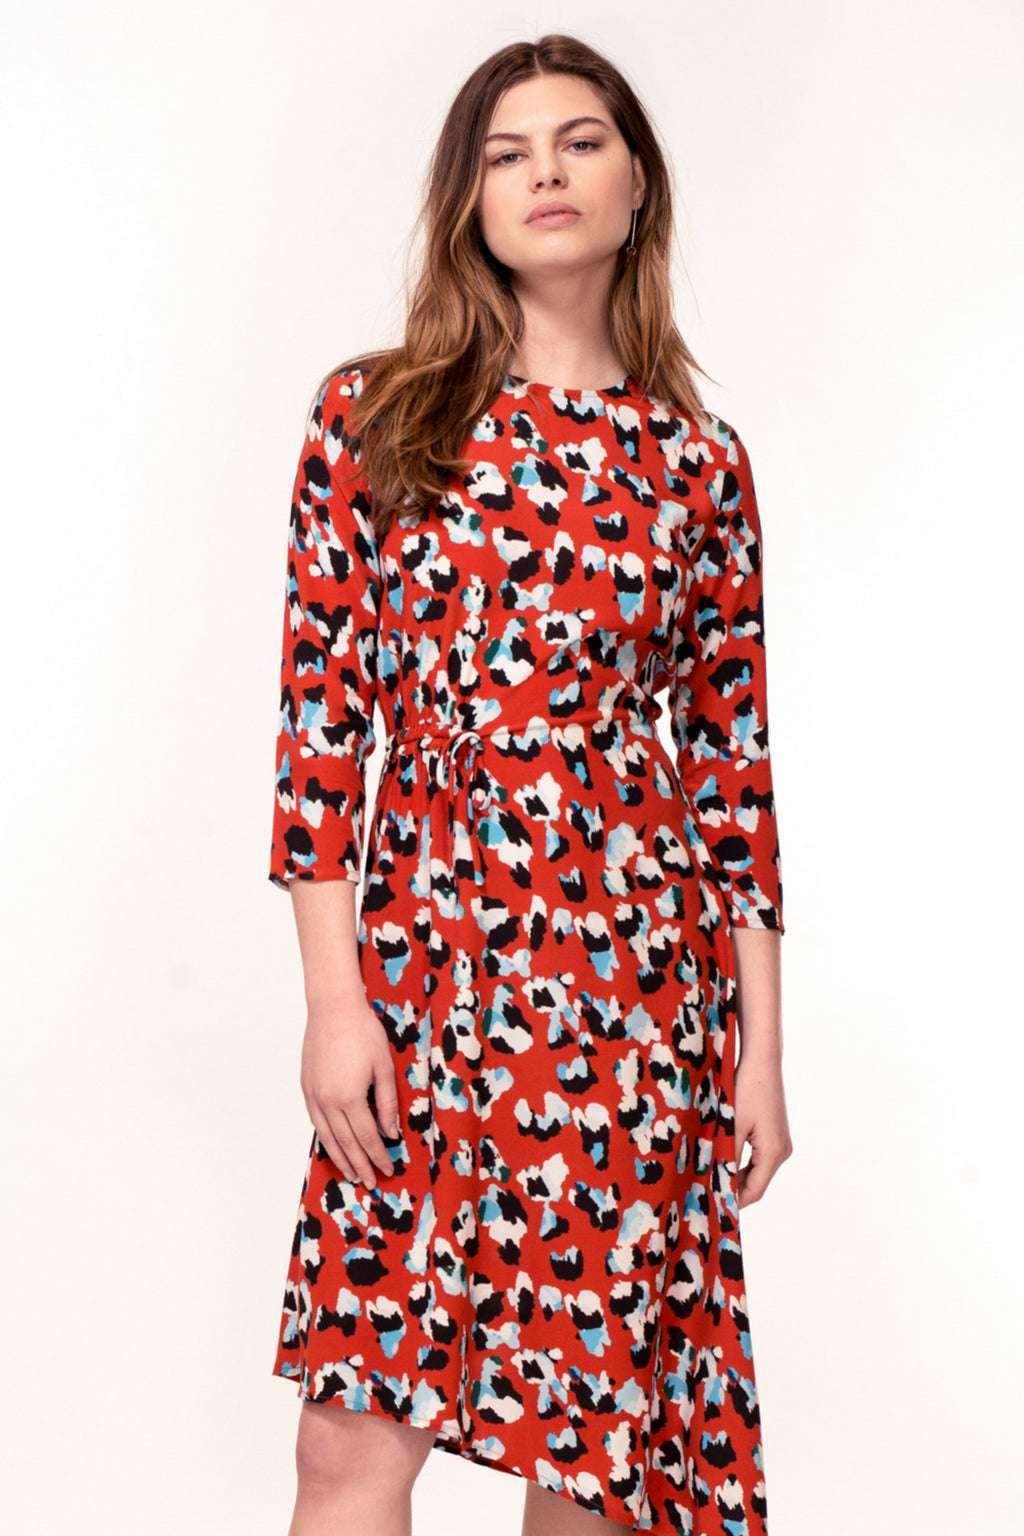 Azalea Hem Dress - Red Animal Print